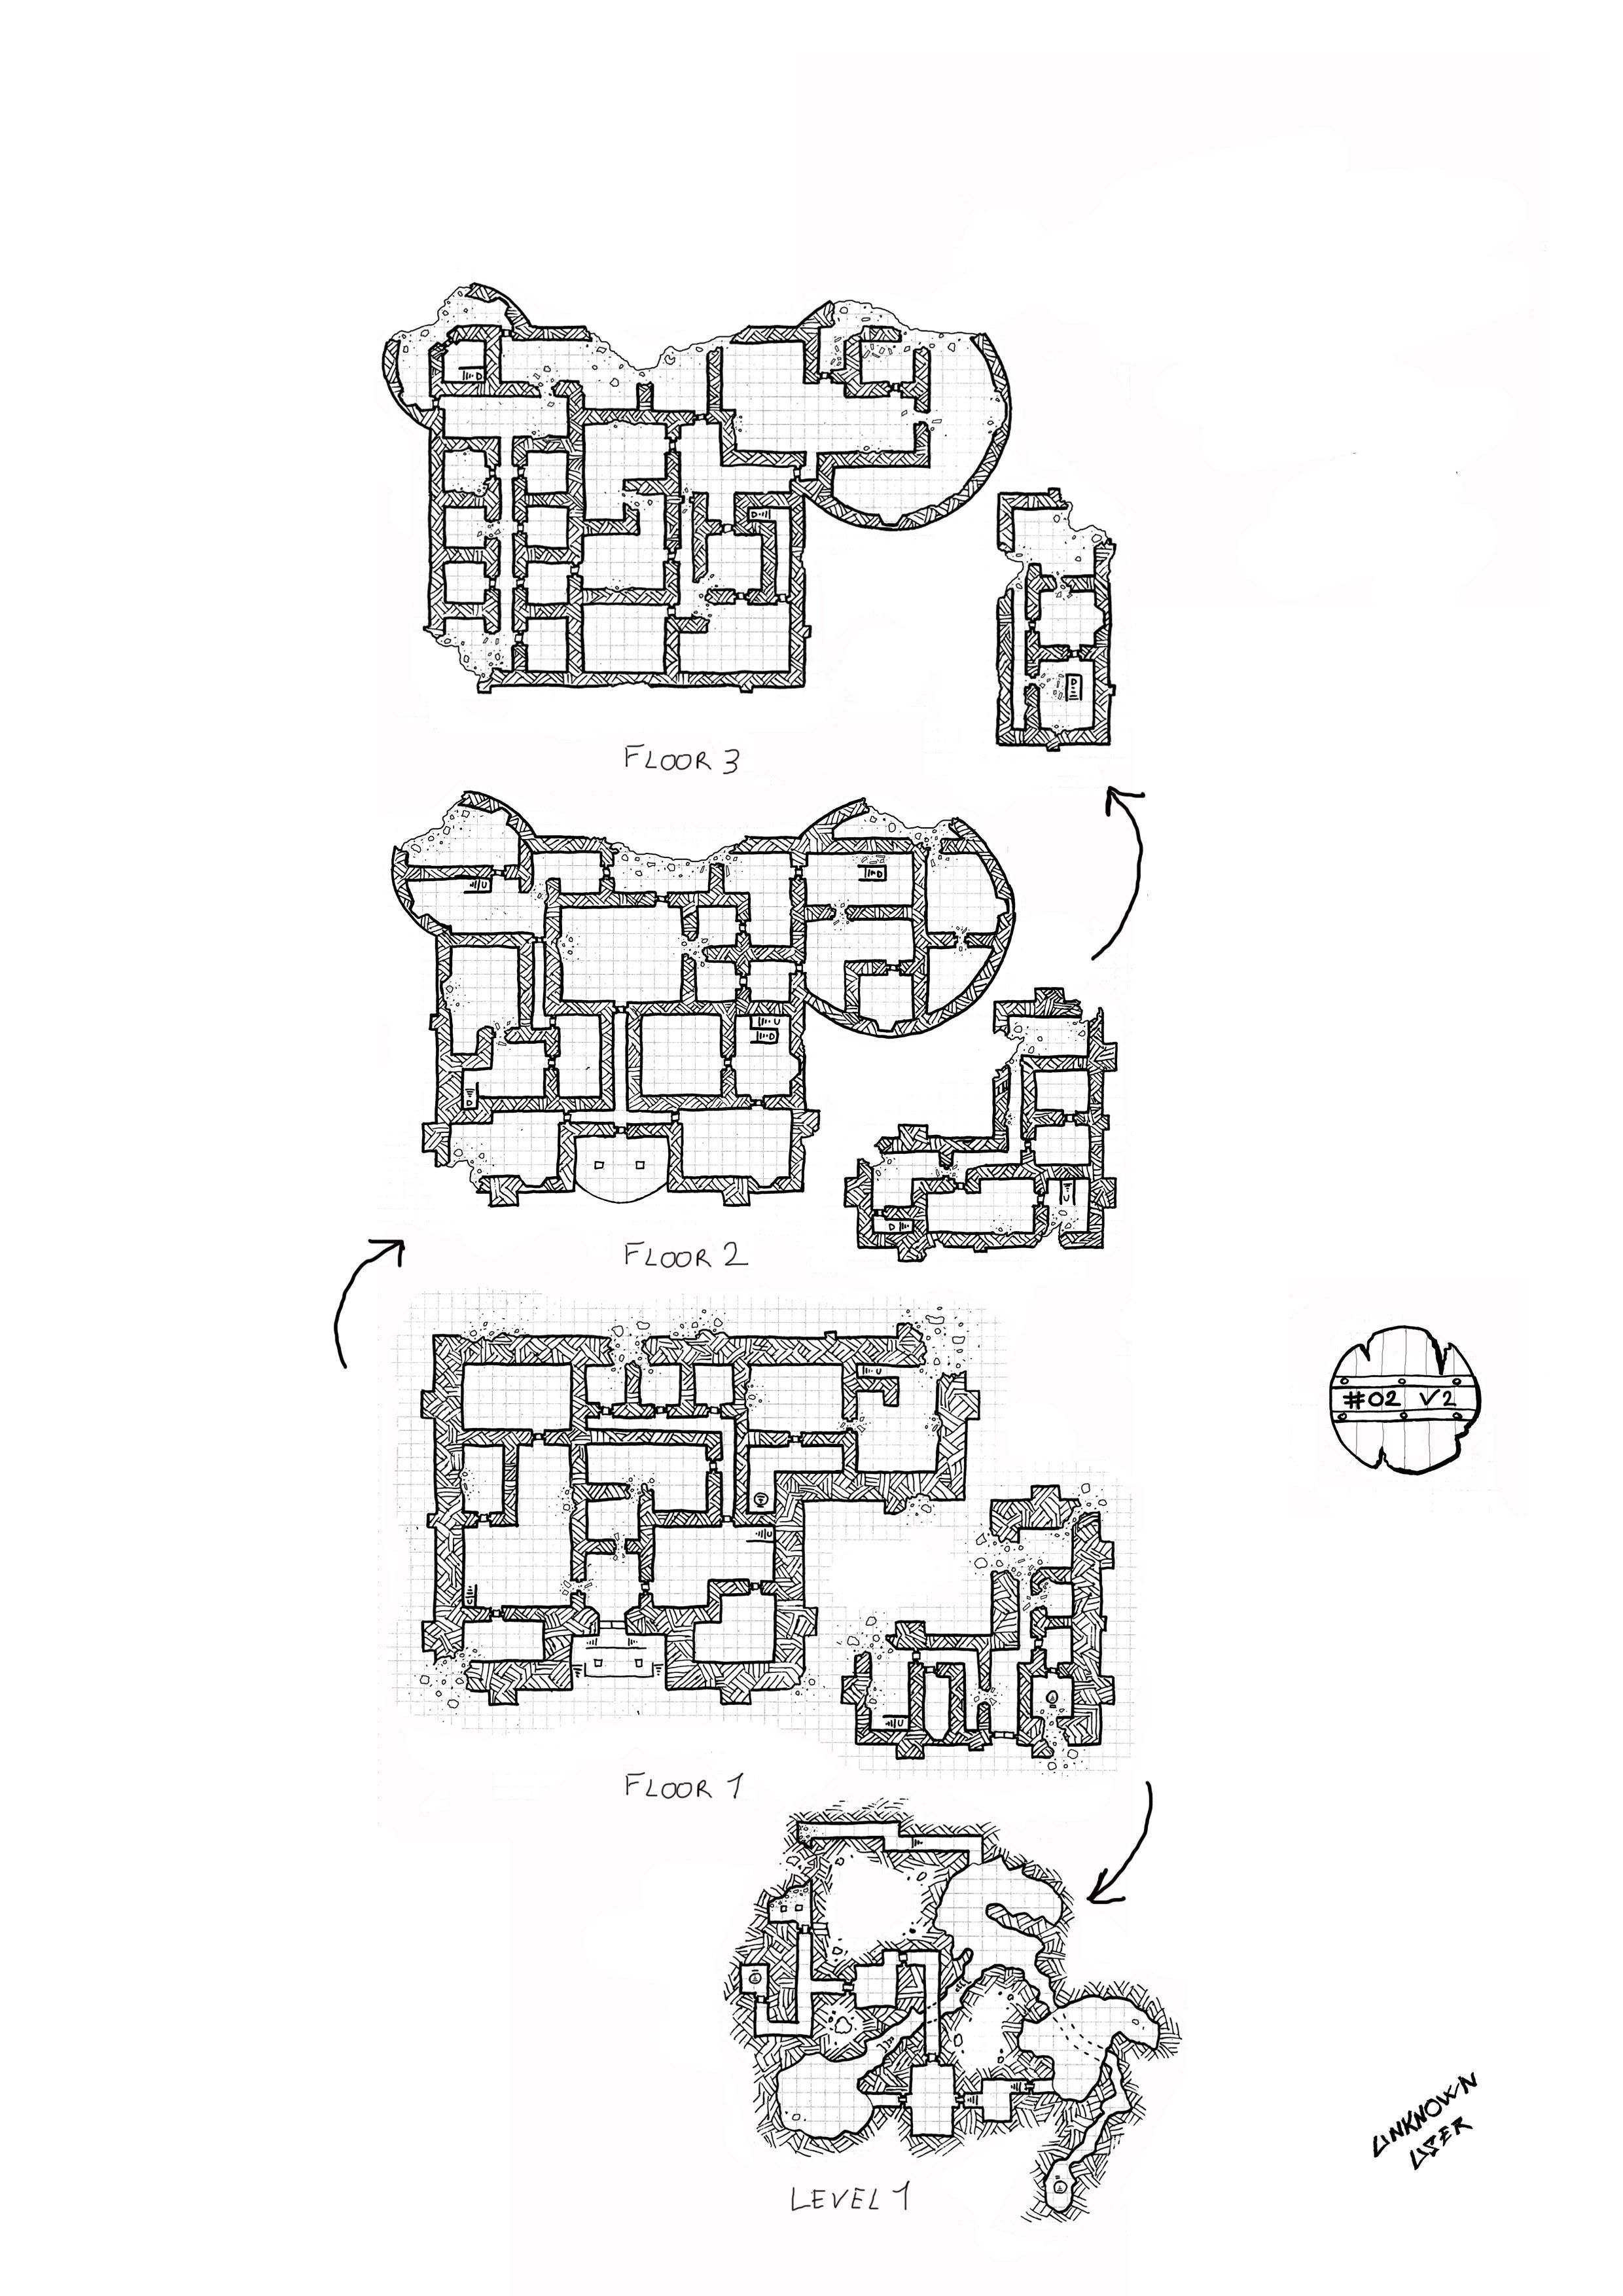 02 v2 for Floor 2 dungeon map